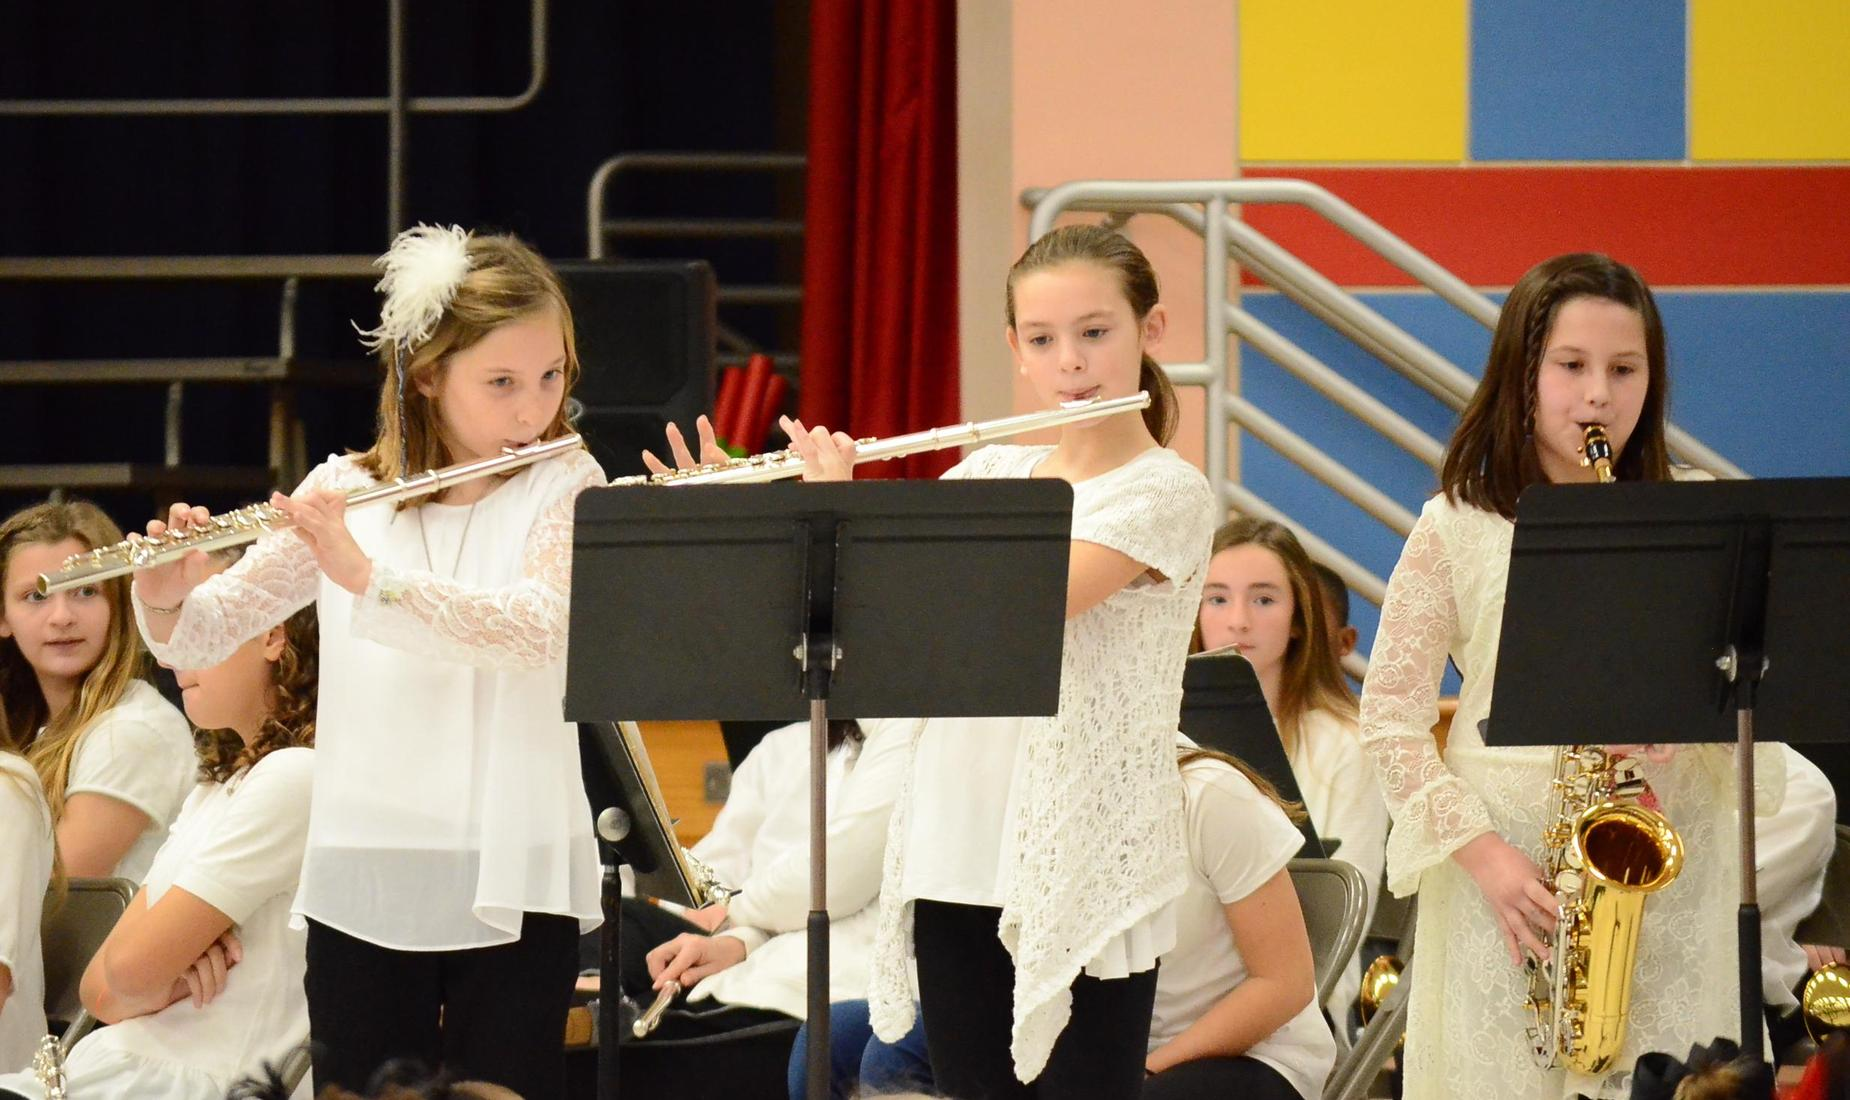 Trio of 3 girls dress in white blouses and black pant performing at their winter/holiday concert. 2 flutists and 1 saxophone